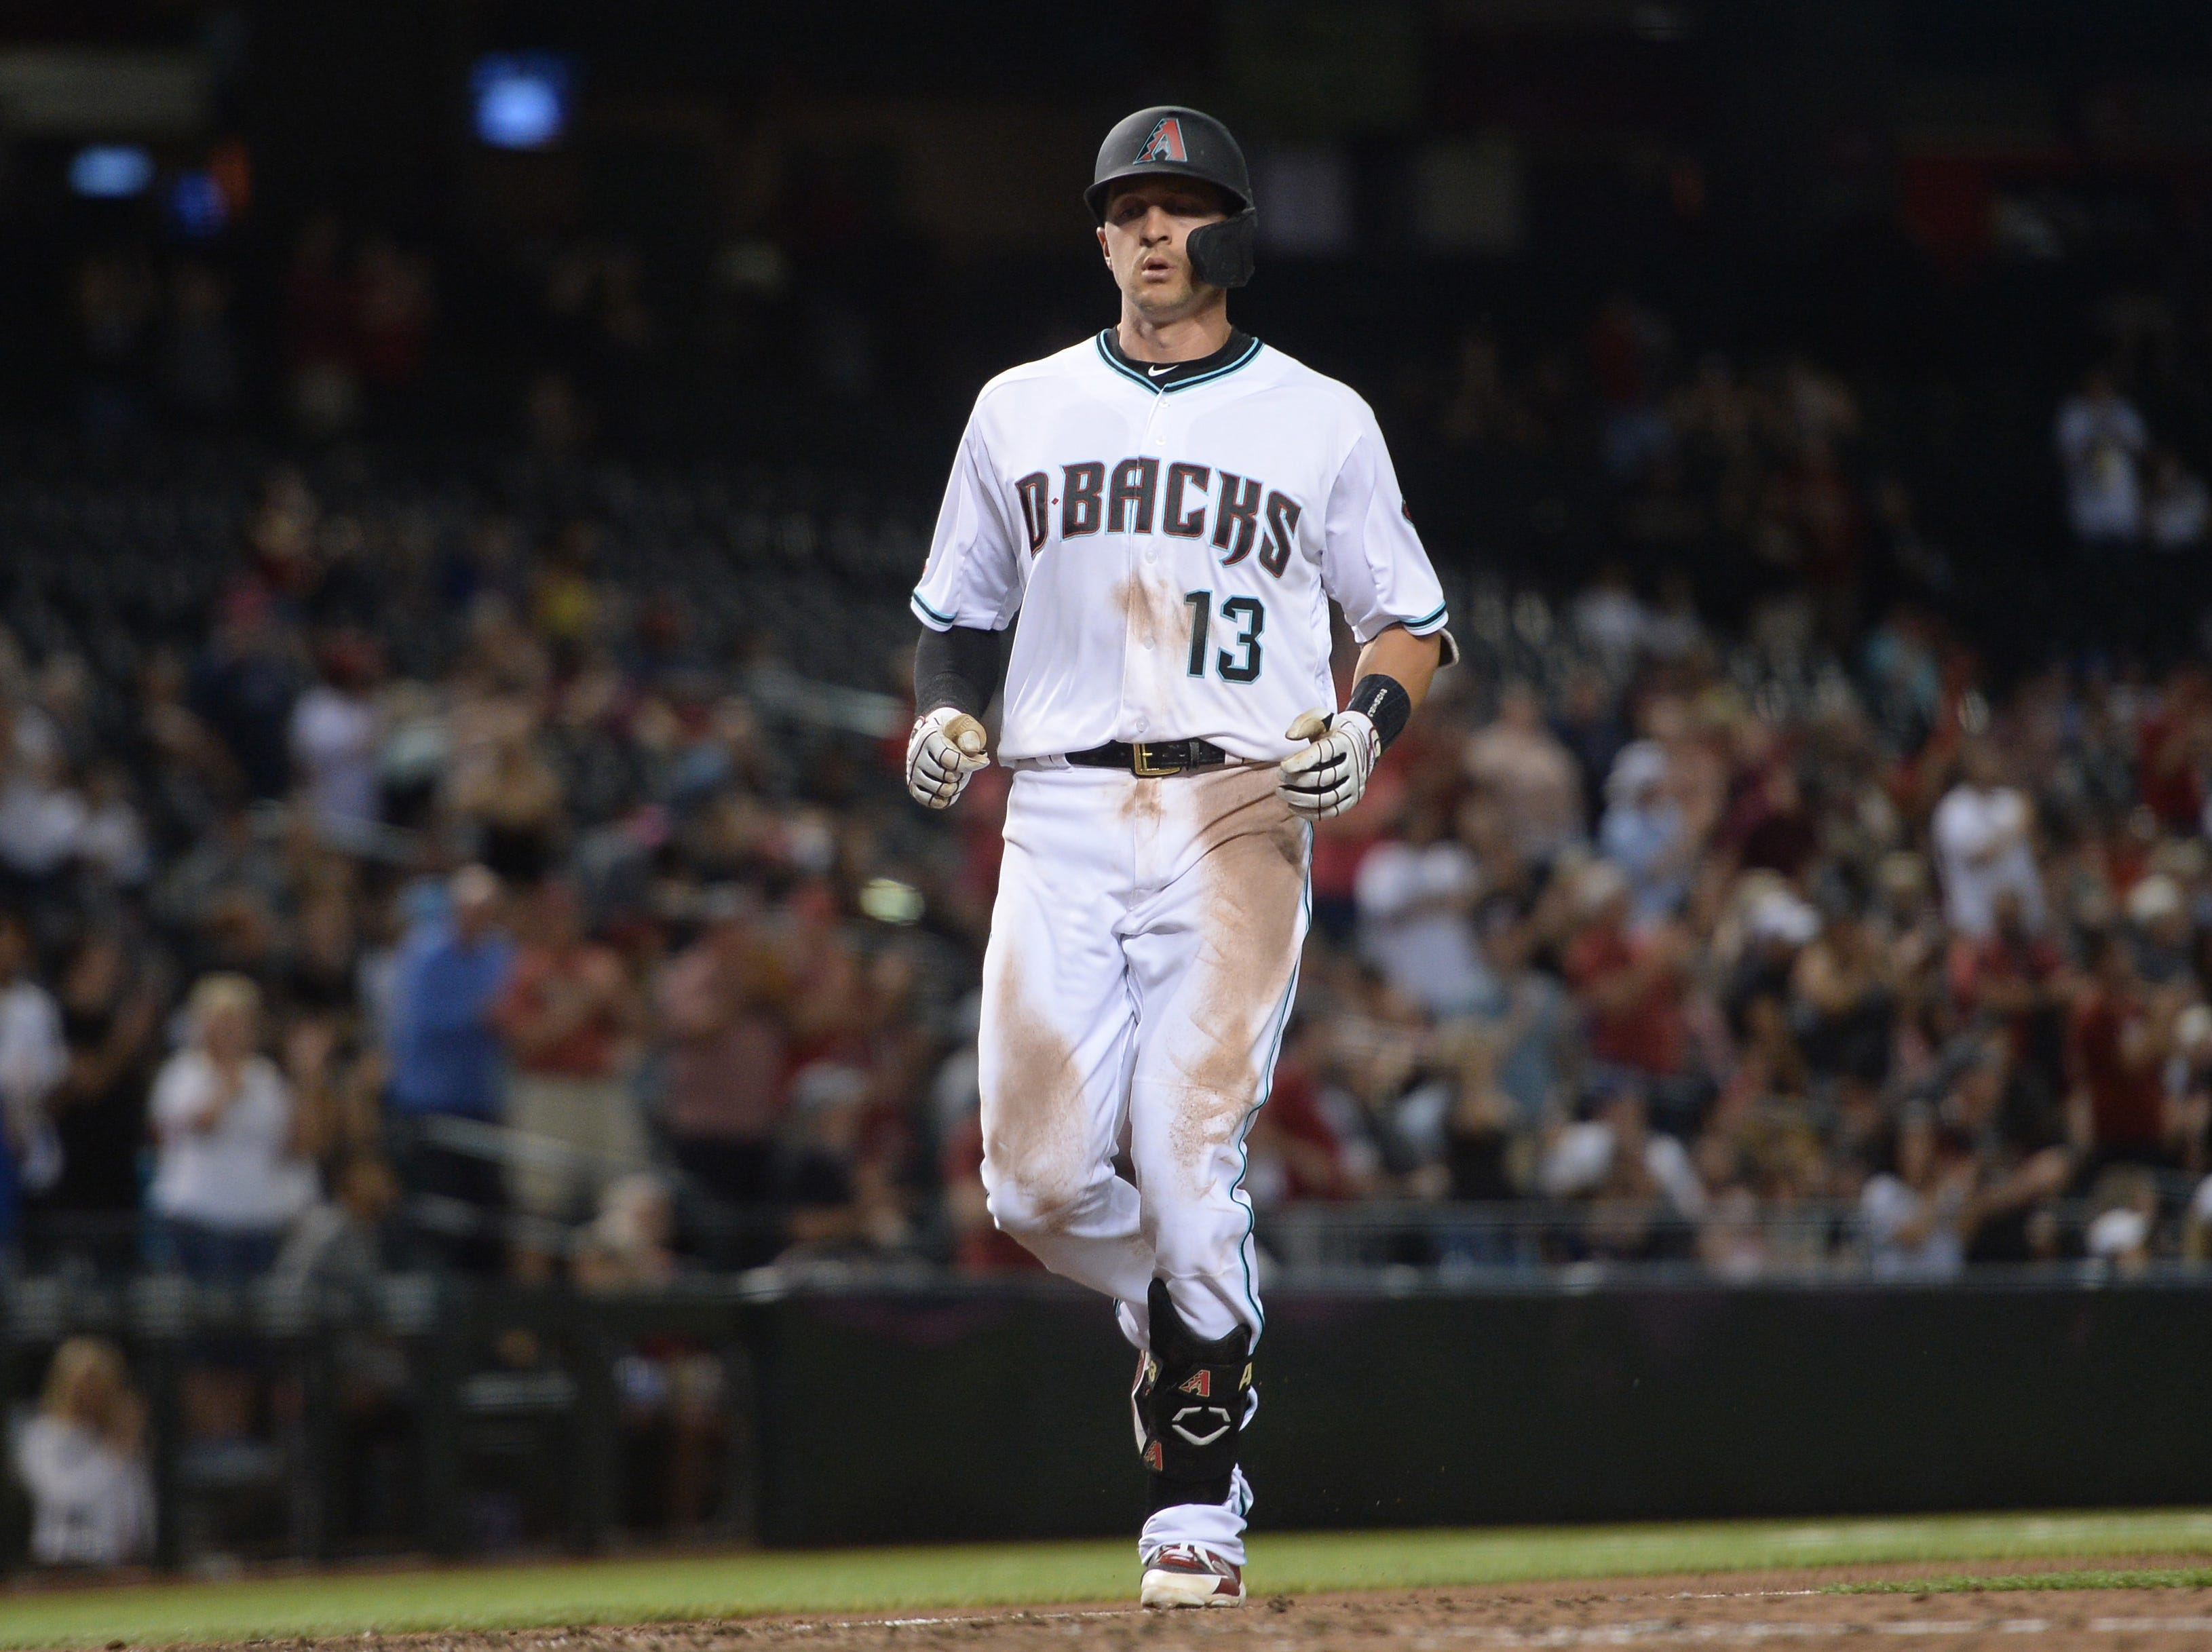 Apr 9, 2019; Phoenix, AZ, USA; Arizona Diamondbacks shortstop Nick Ahmed (13) approaches home plate after hitting a solo home run against the Texas Rangers during the seventh inning at Chase Field. Mandatory Credit: Joe Camporeale-USA TODAY Sports